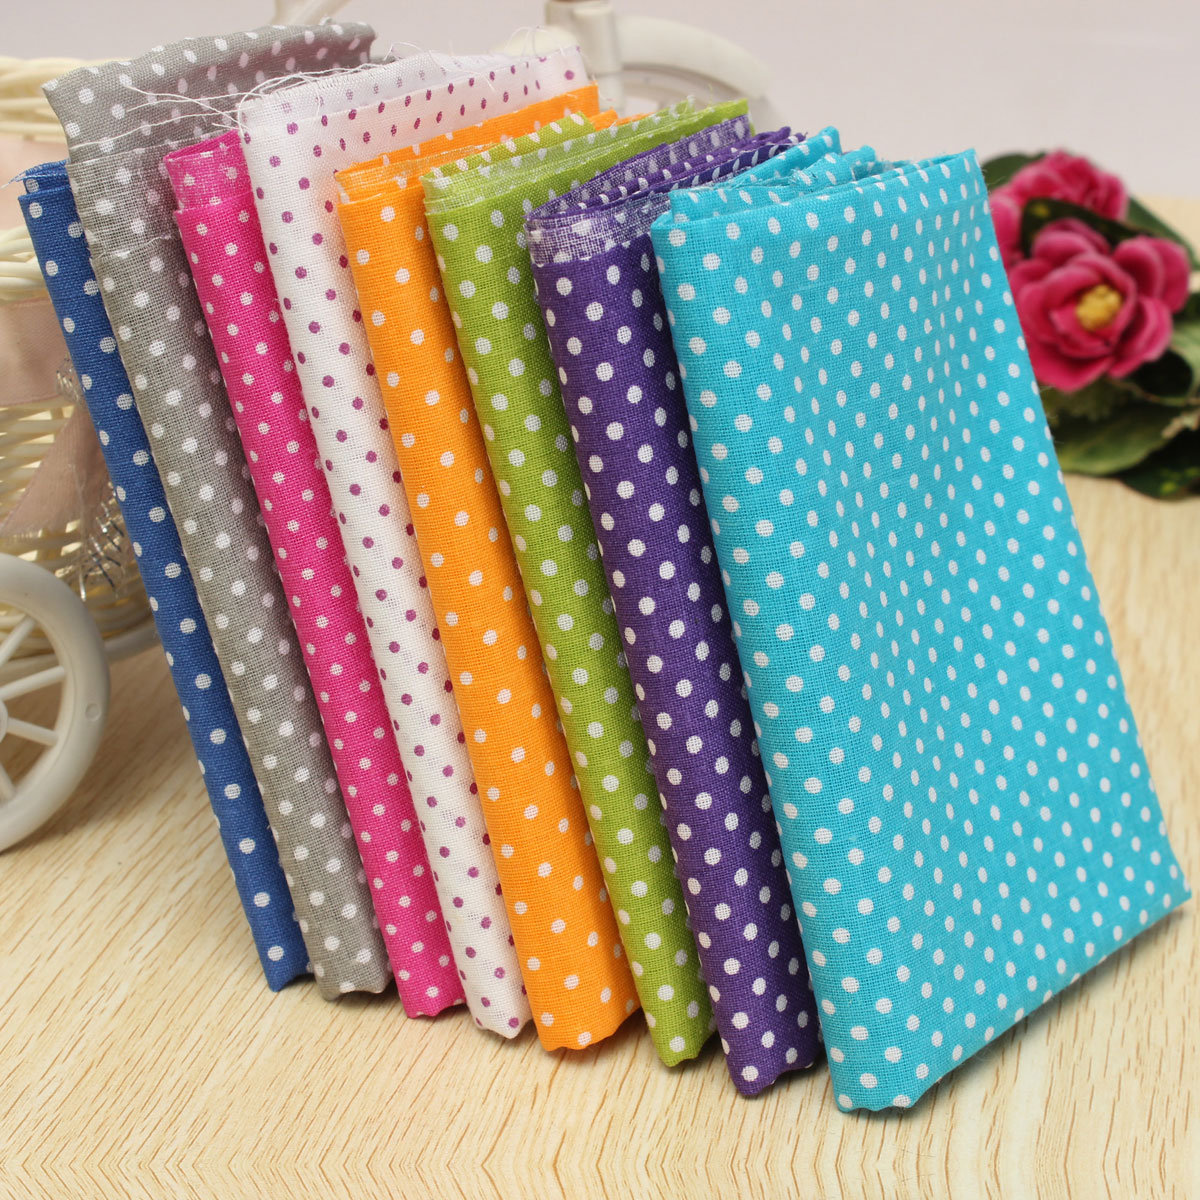 8Pcs 50*50cm Colorful Wave Point Color Cloth Decorative Comfortable Cotton Fabric For Sewing Crafts